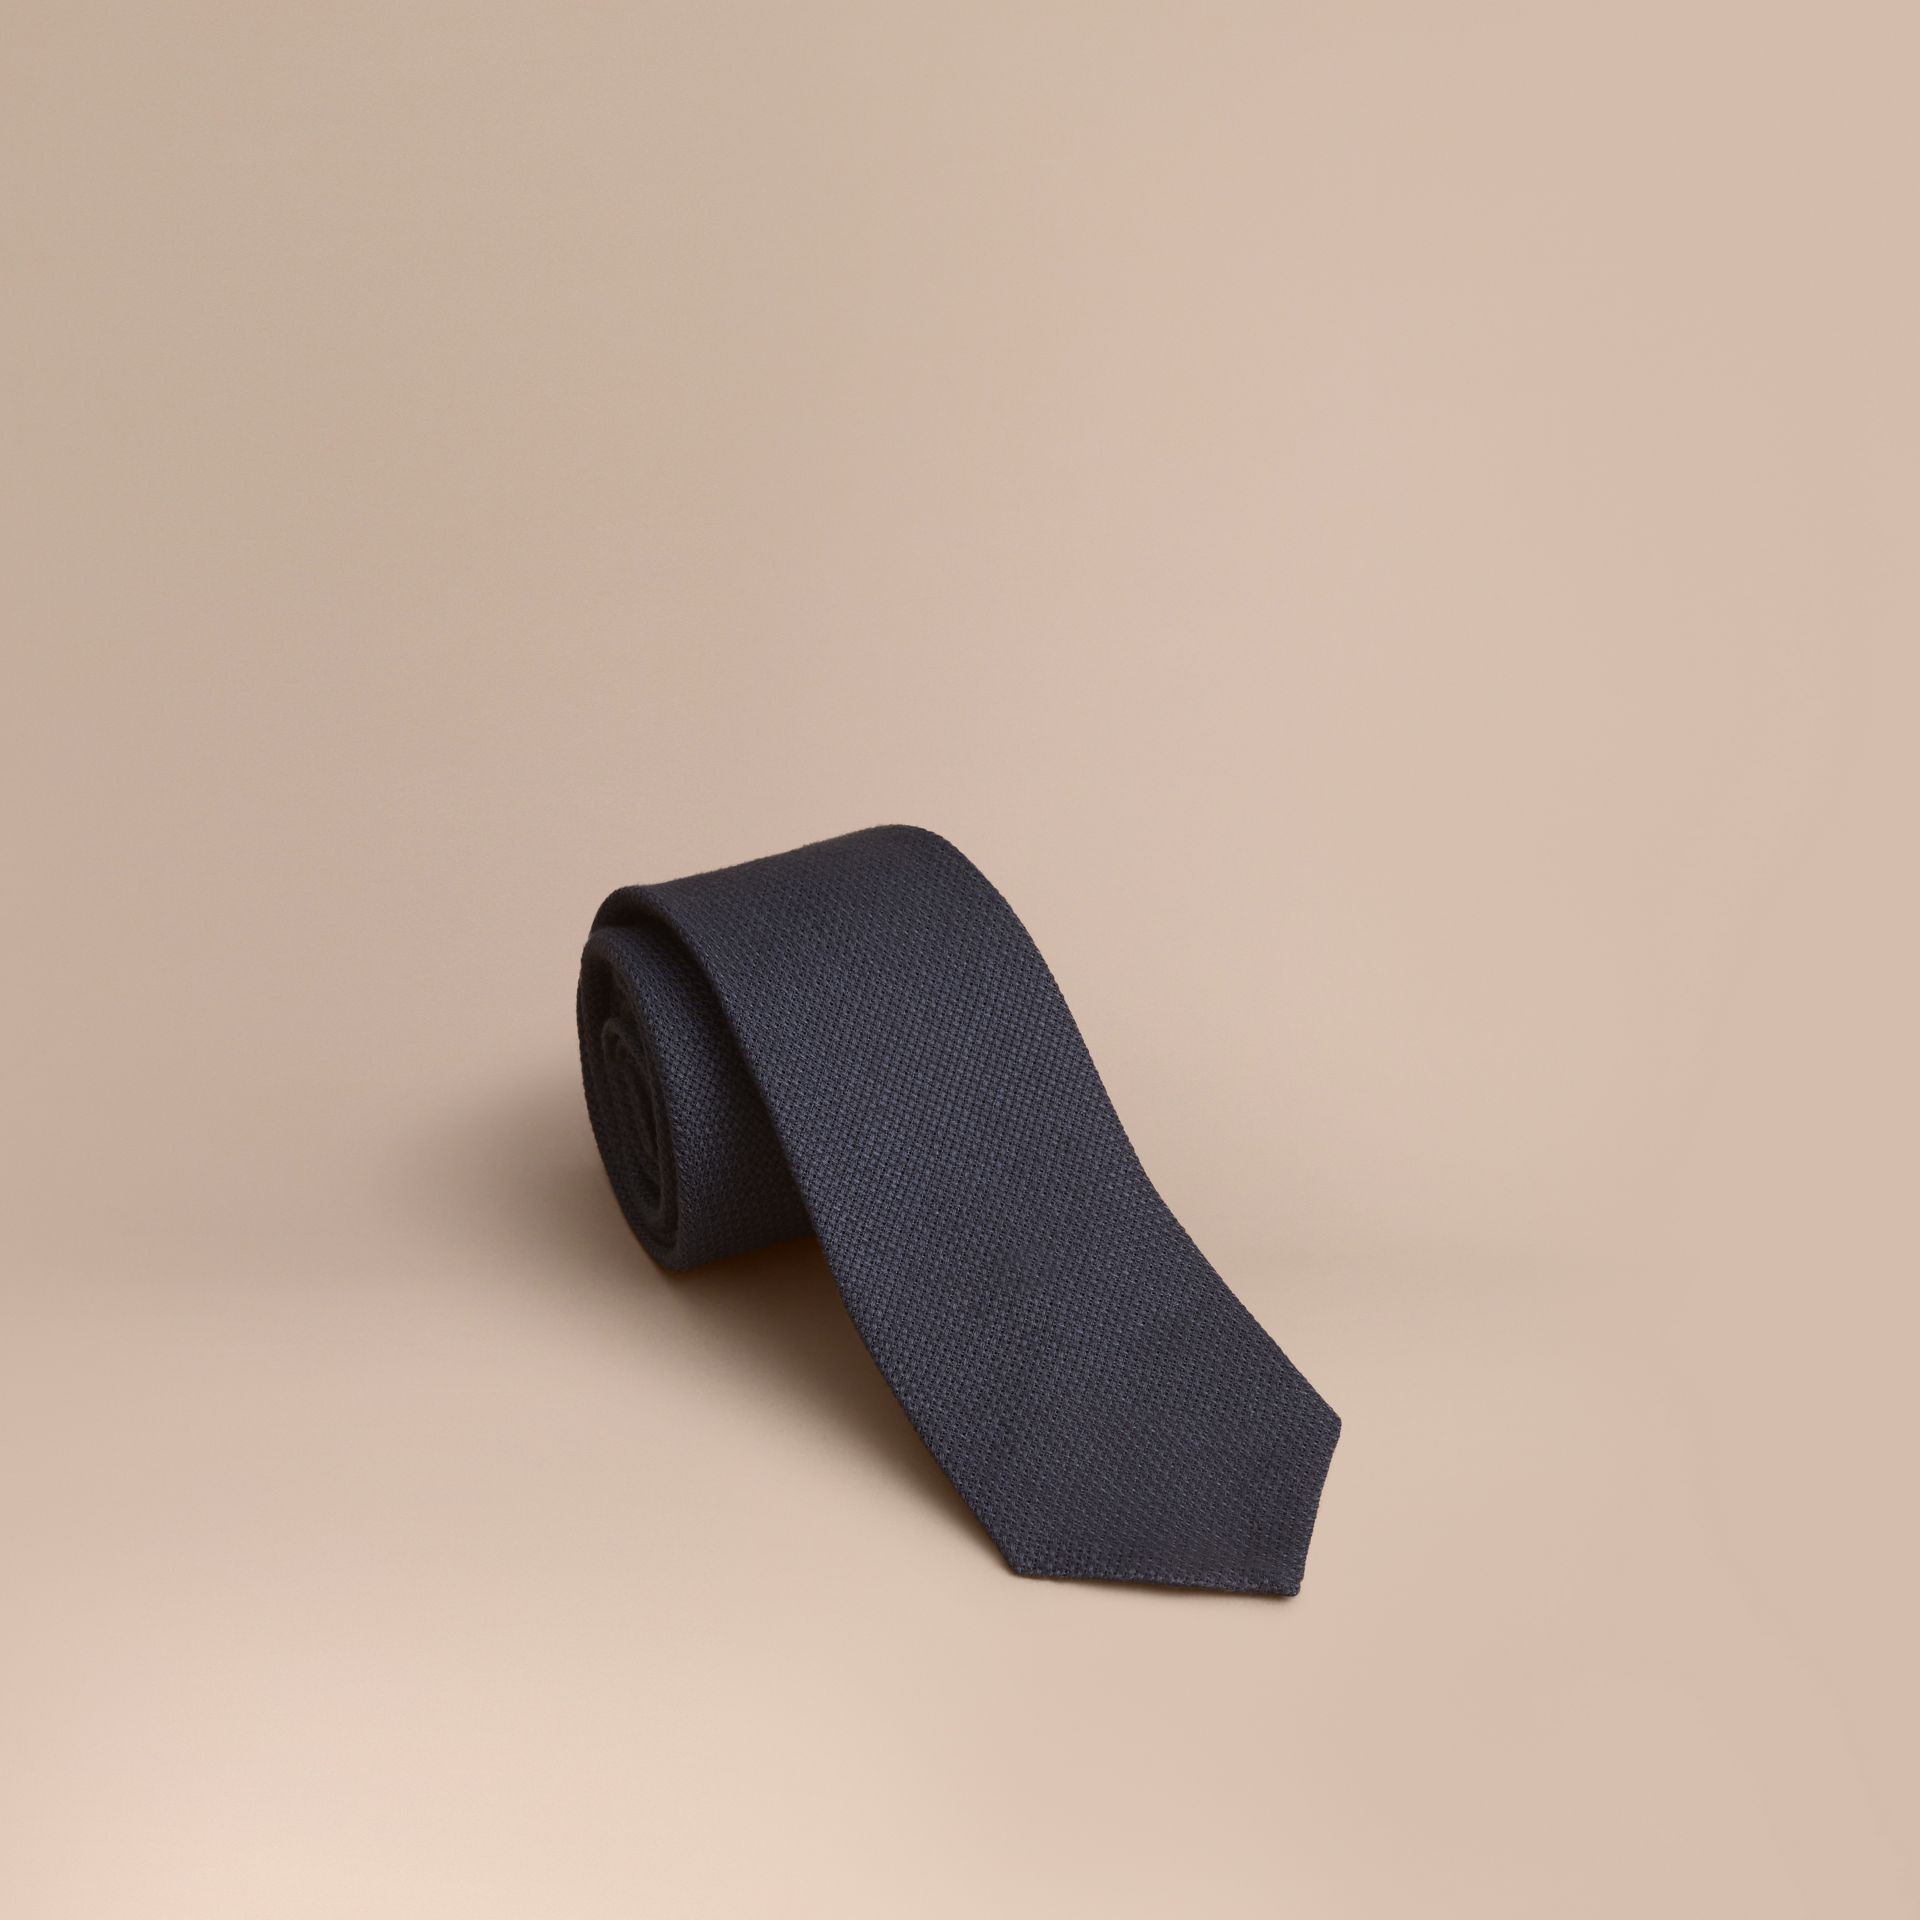 Modern Cut Linen Tie in Navy - Men | Burberry - gallery image 1